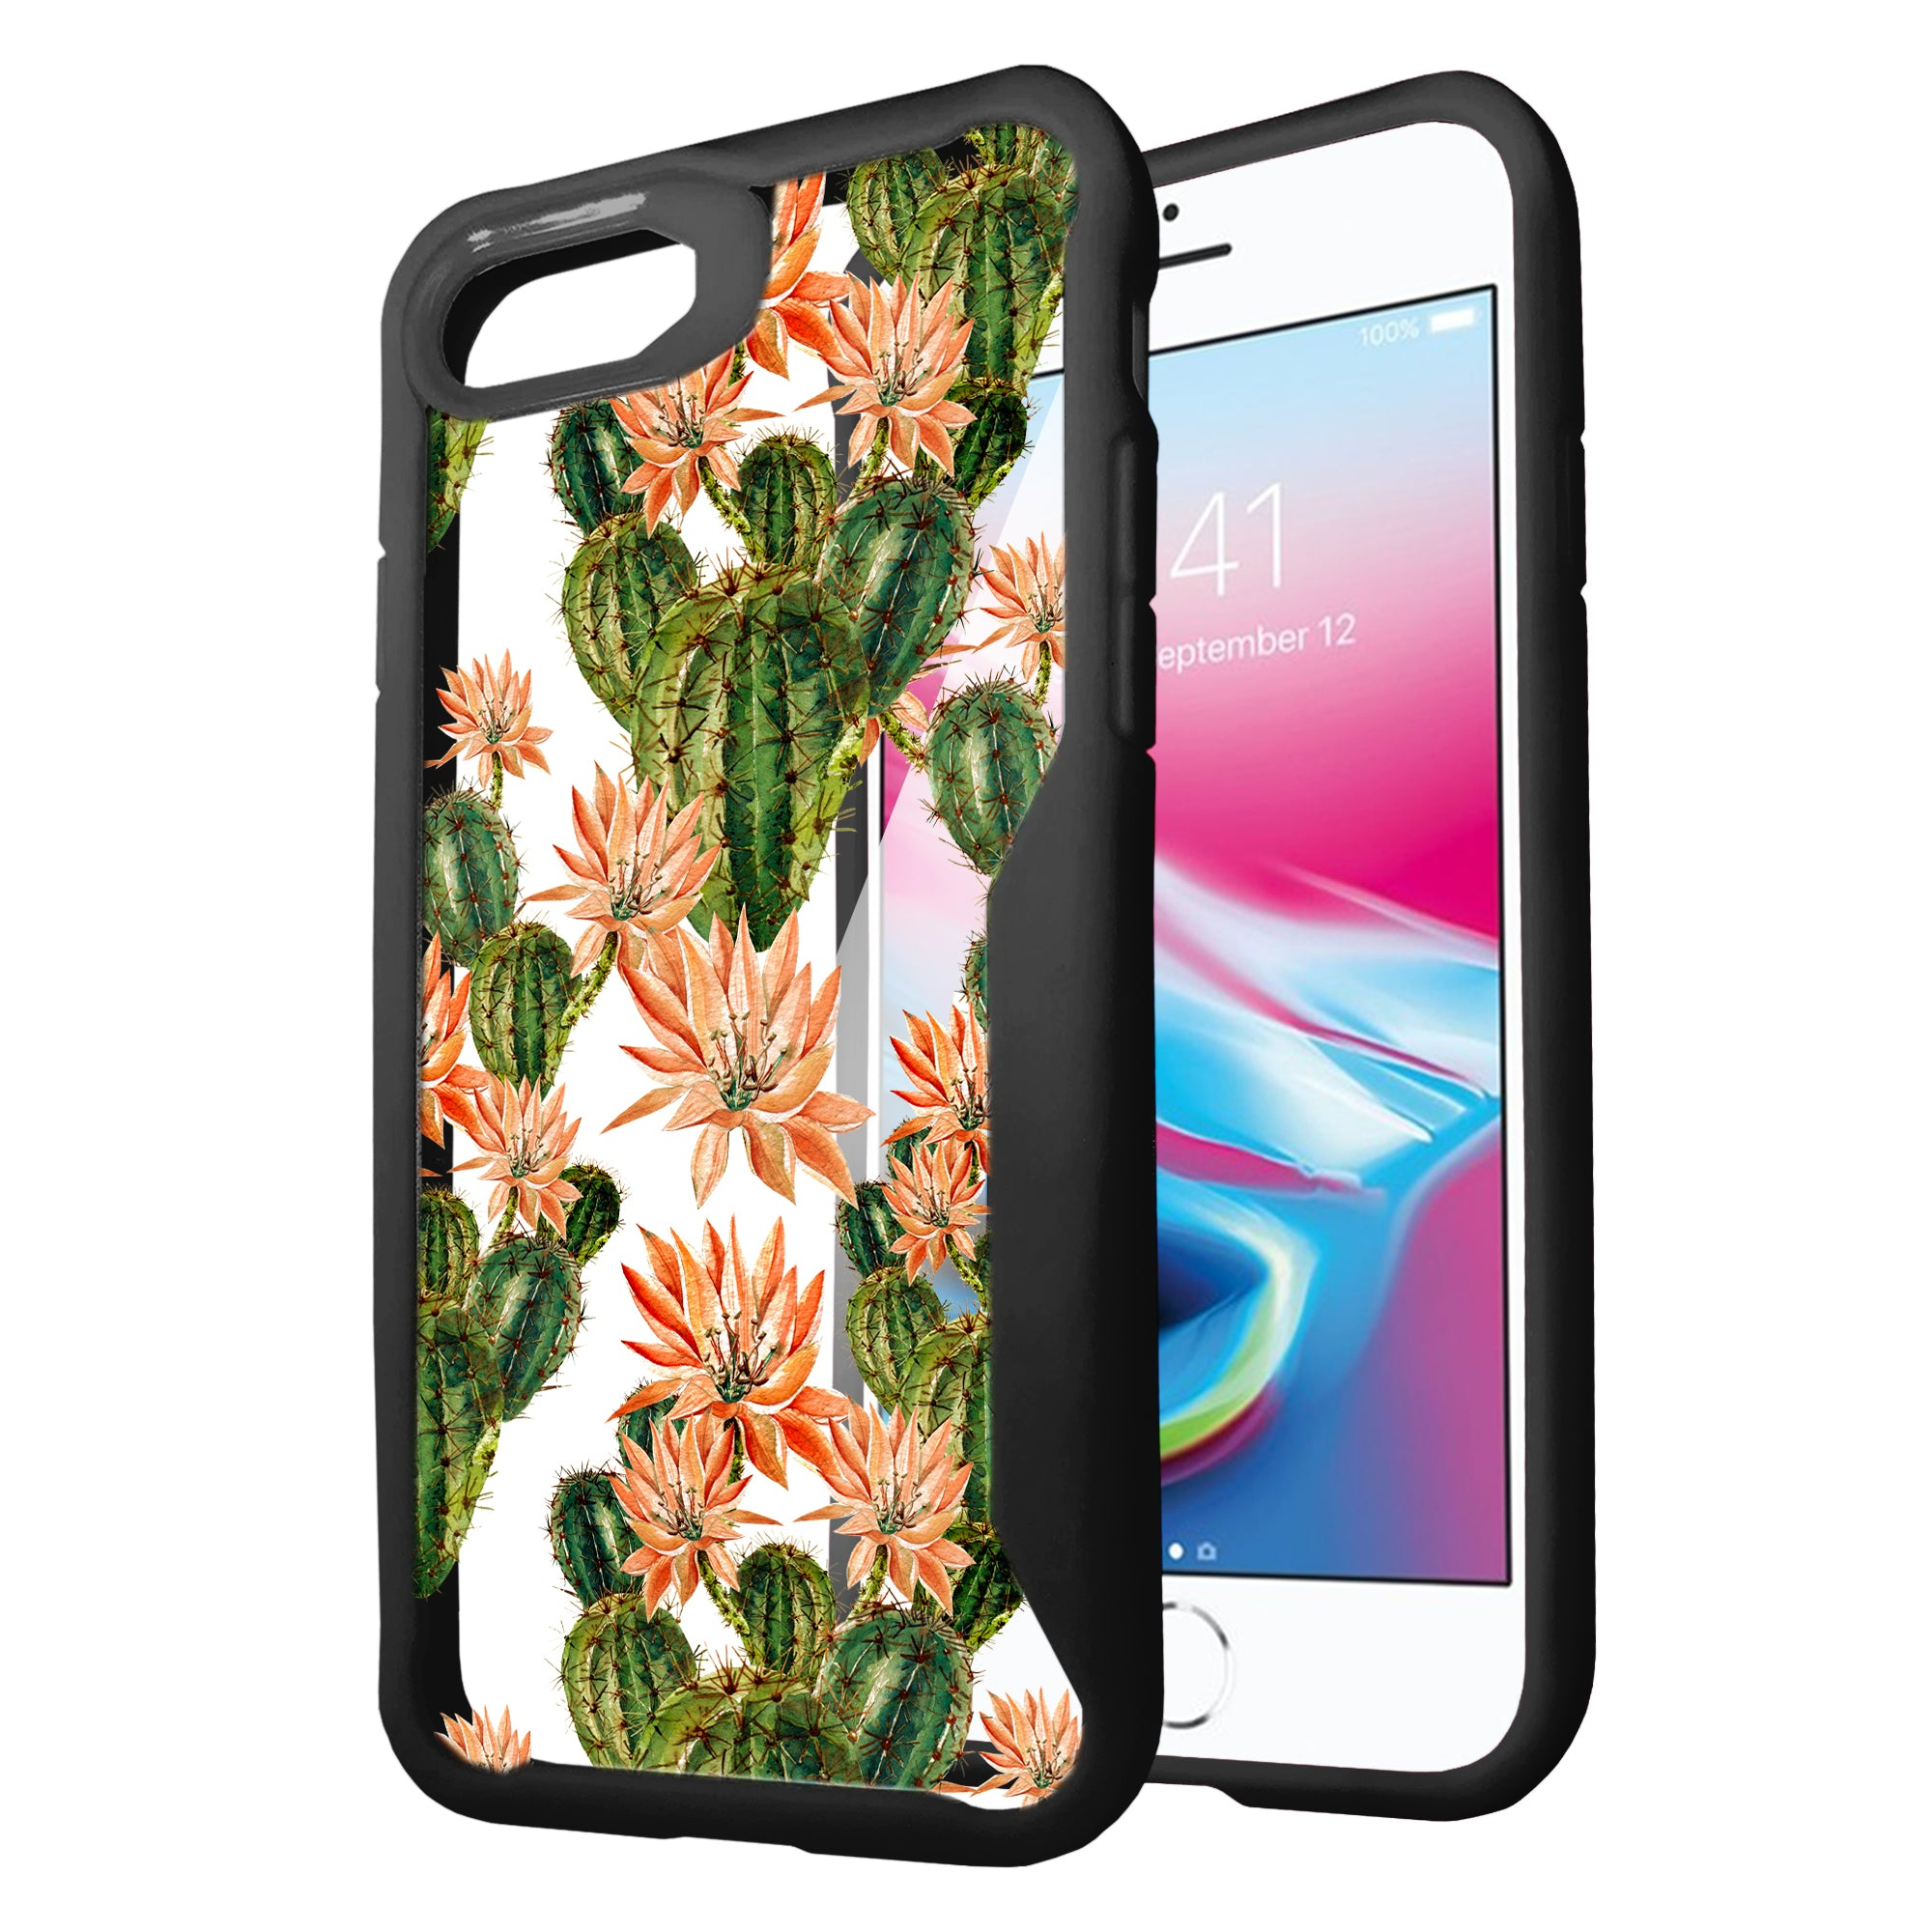 For-Apple-iPhone-8-Plus-Clear-Case-with-Black-Silicone-Edges-Floral-Design thumbnail 15